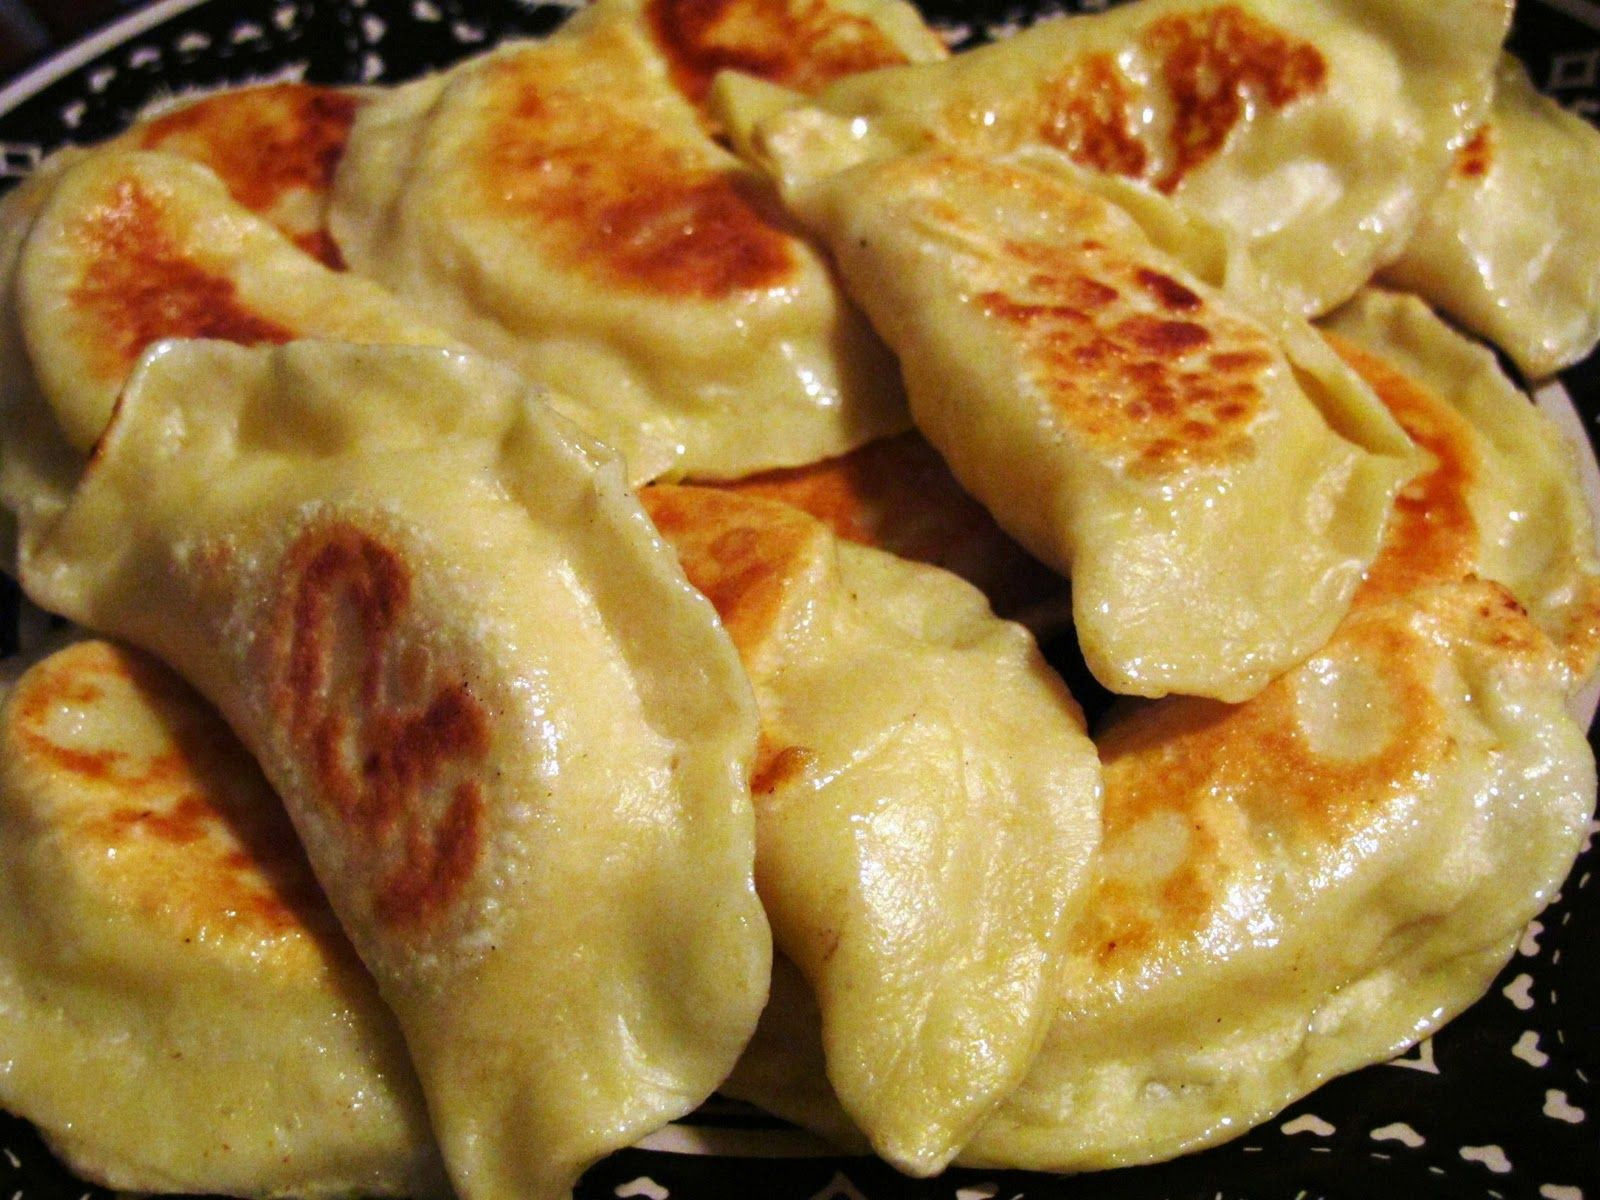 Potato & Cheese Pierogi | Recipes to try | Pinterest